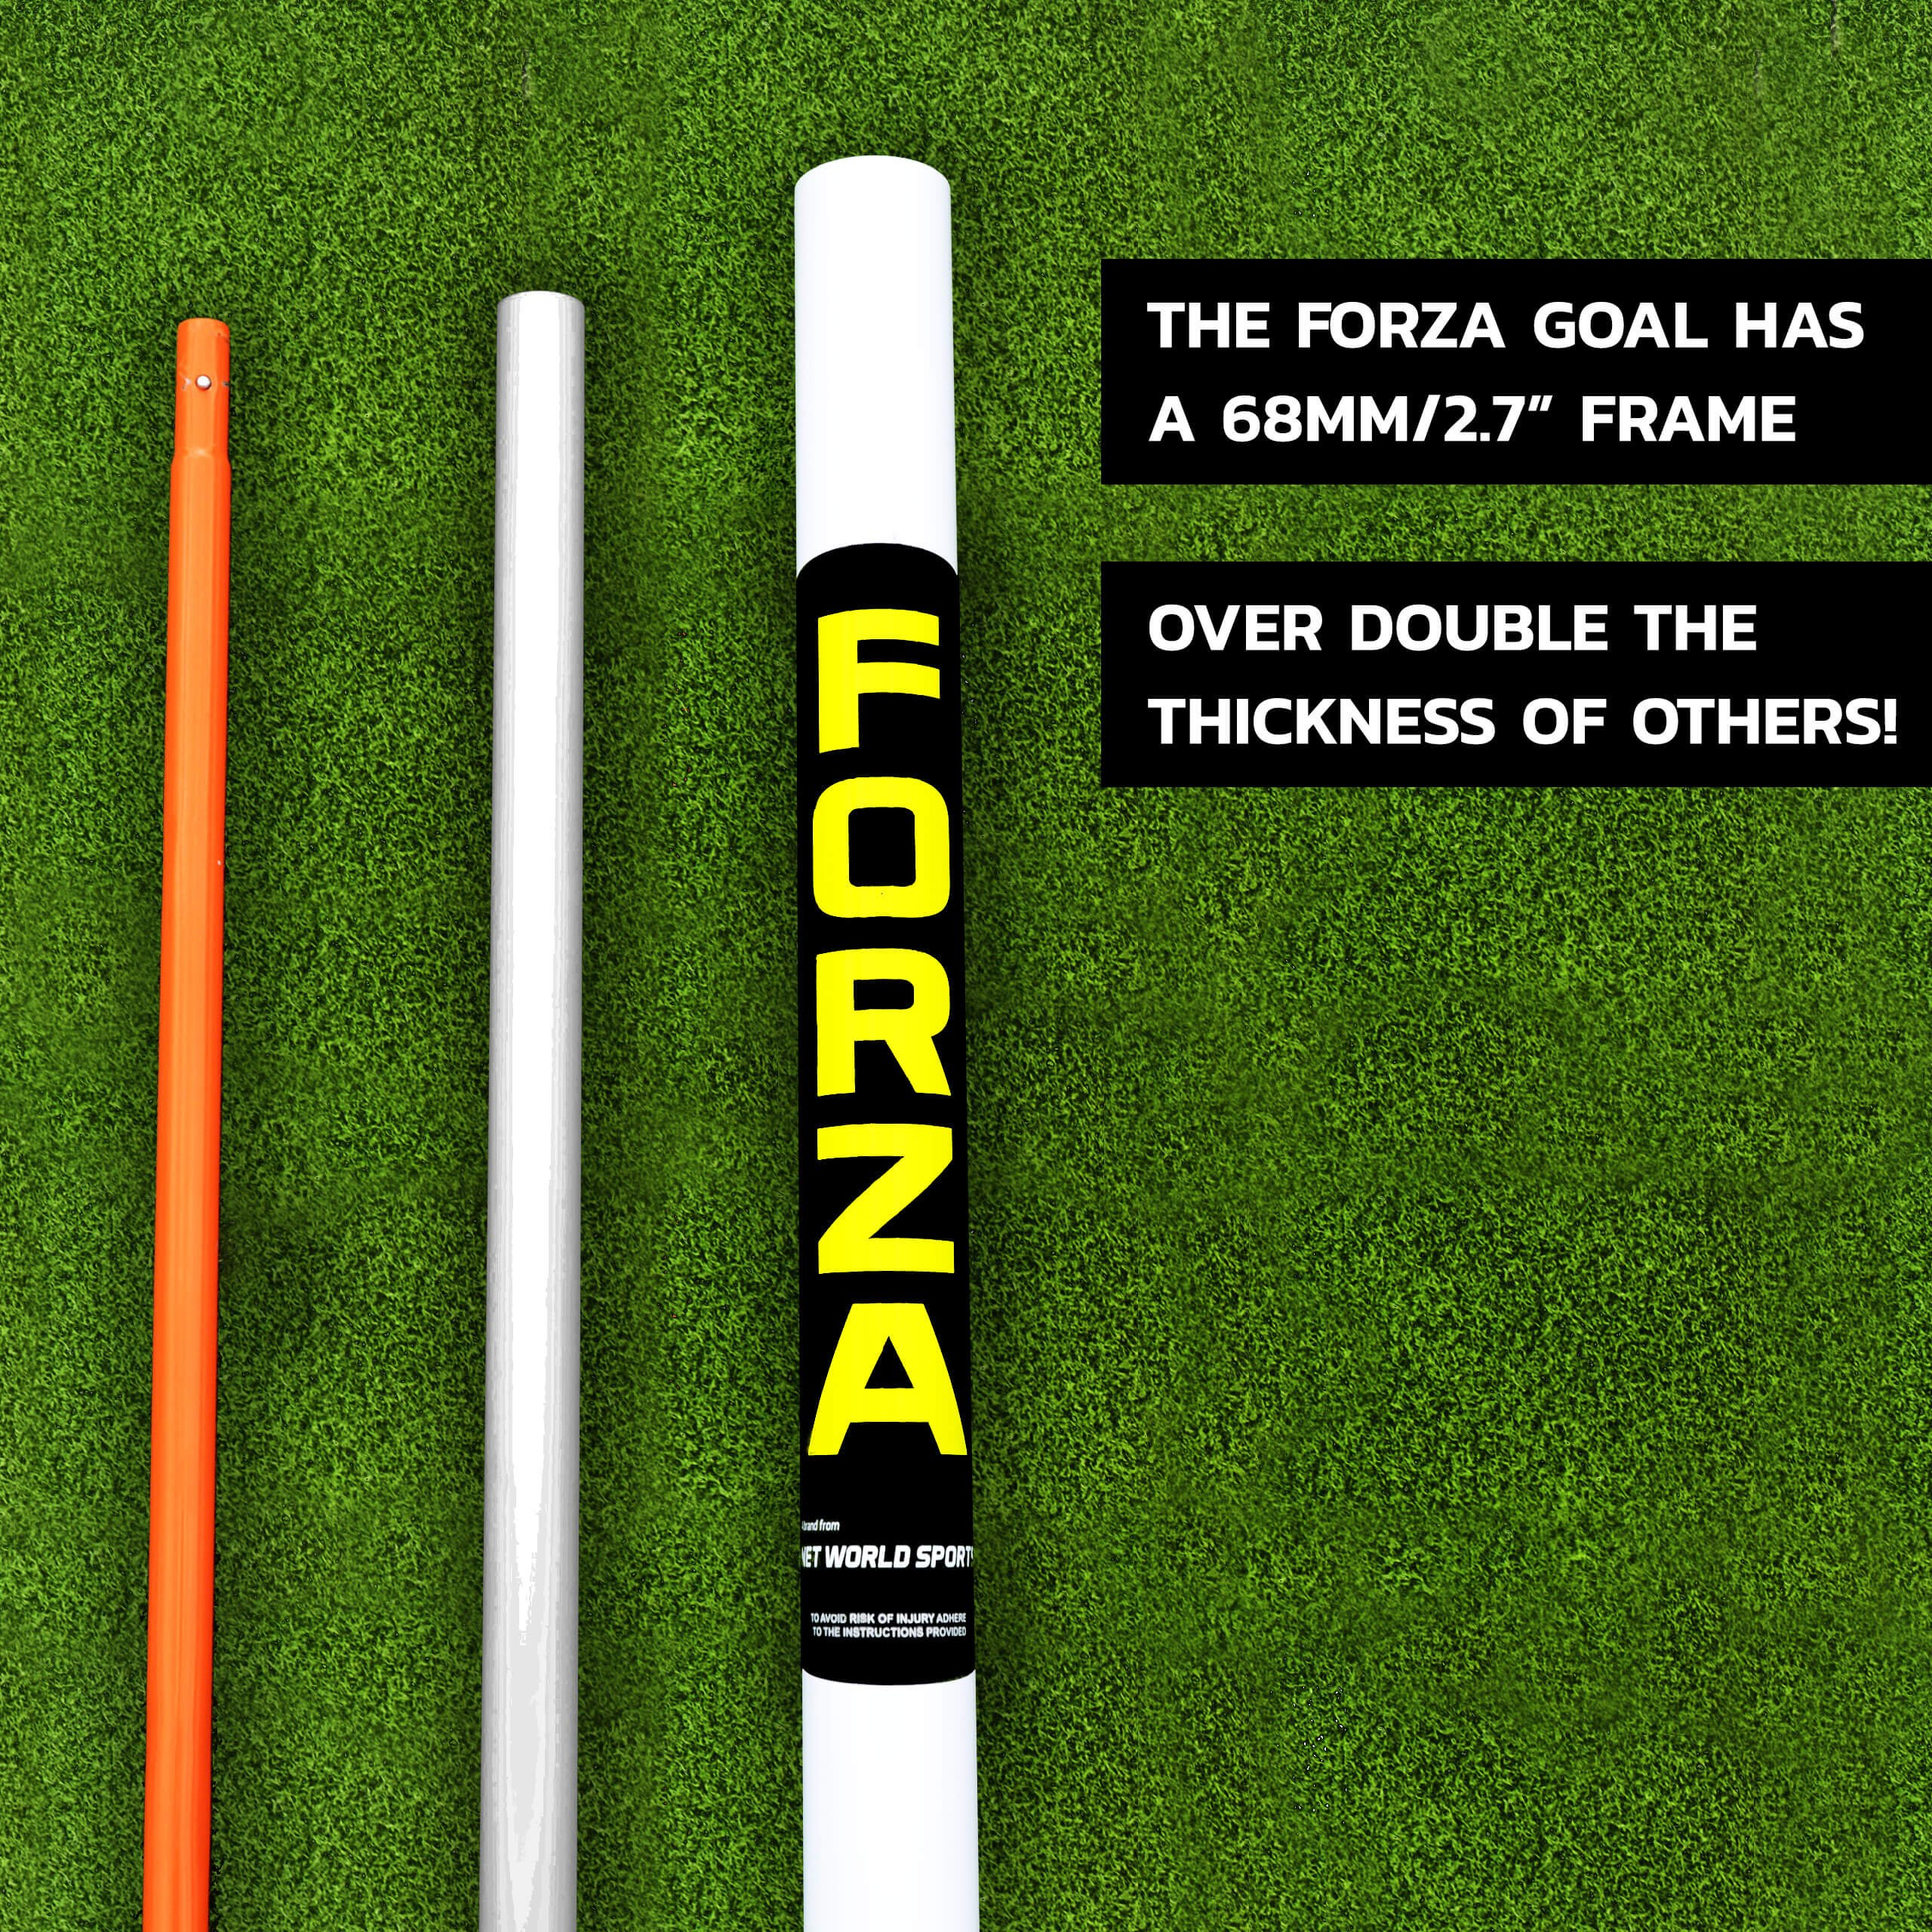 FORZA ''Match Standard'' 12' x 6' Professional Soccer Goal and Net - The Best Goal That Money Can Buy! (12 x 6 FORZA Goal & Carry Bag) by Net World Sports (Image #2)